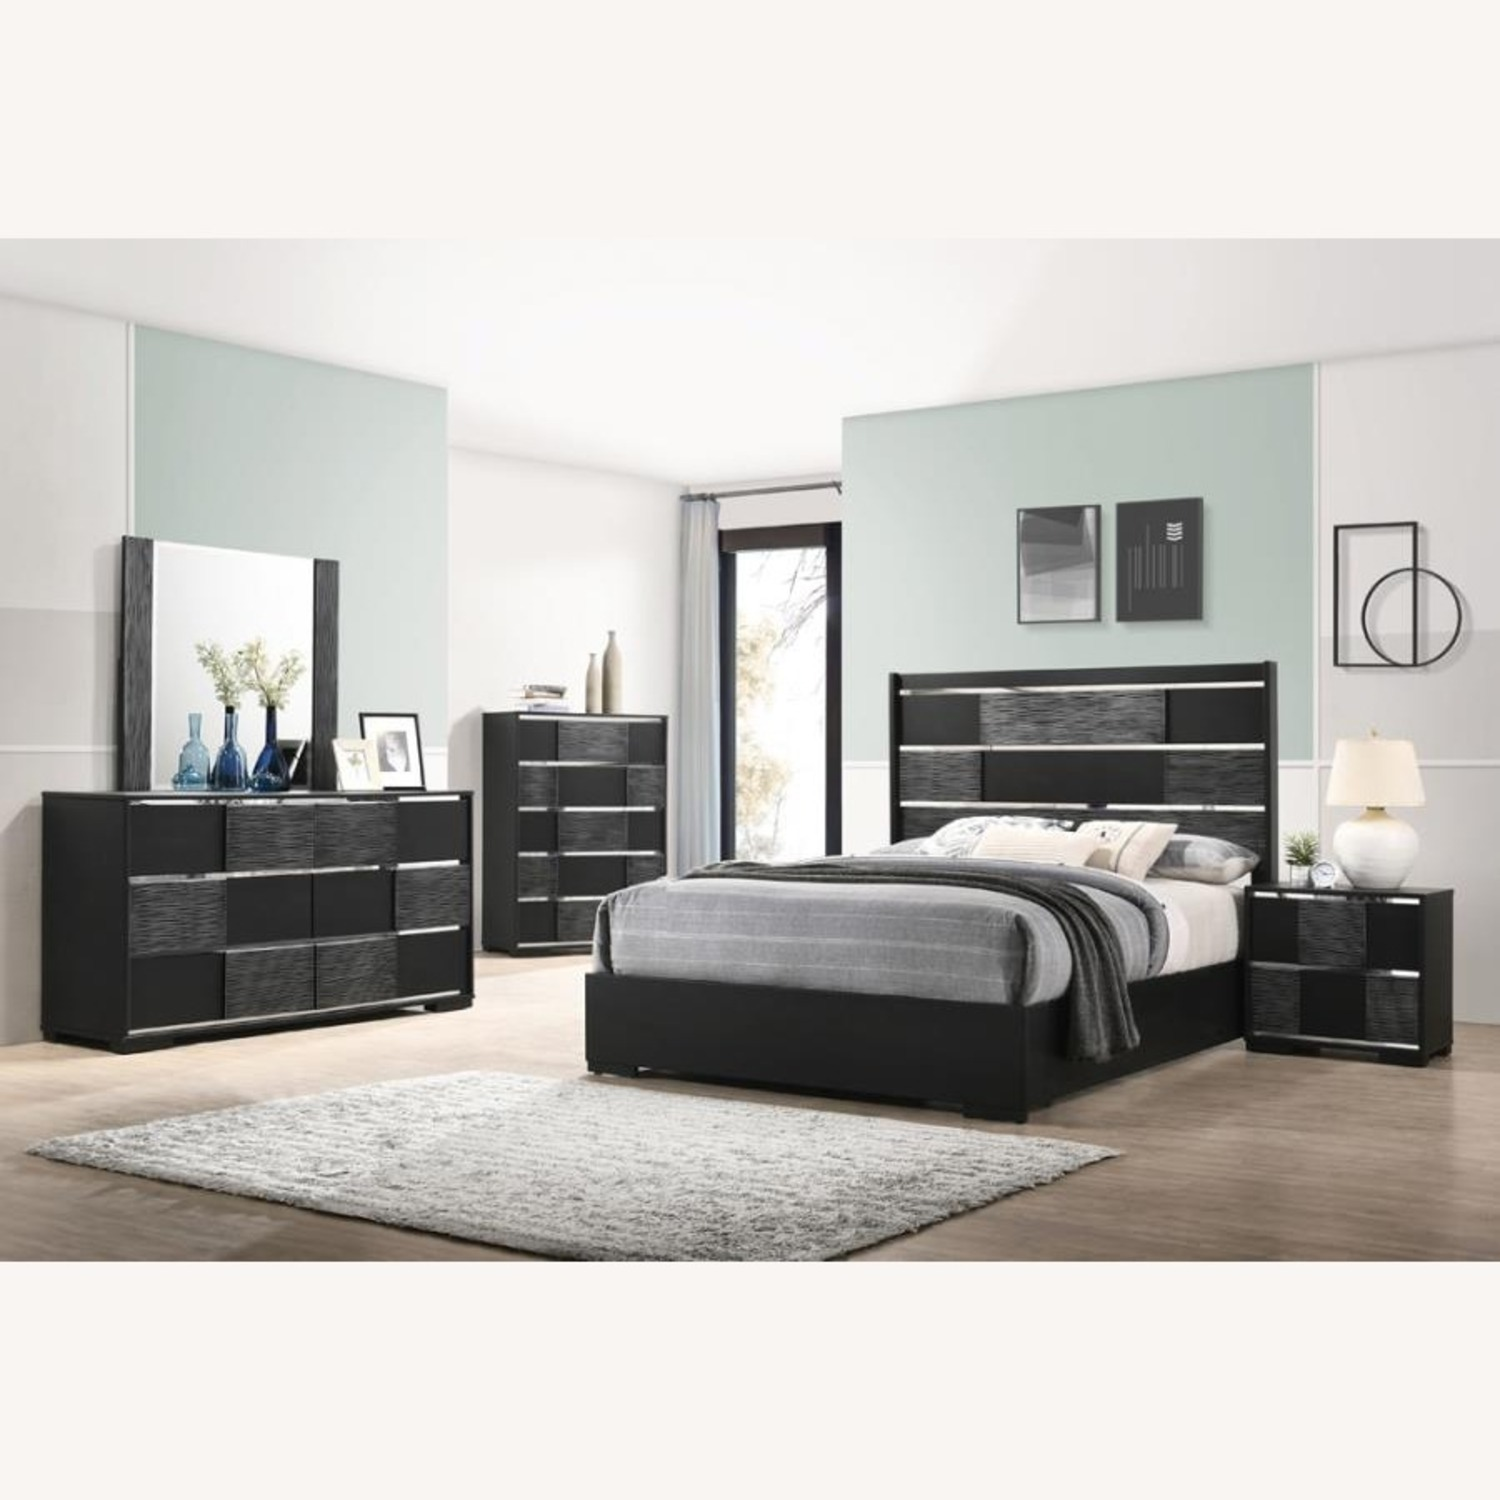 King Bed In Black Wood Finish W/ Chambered Trim - image-2